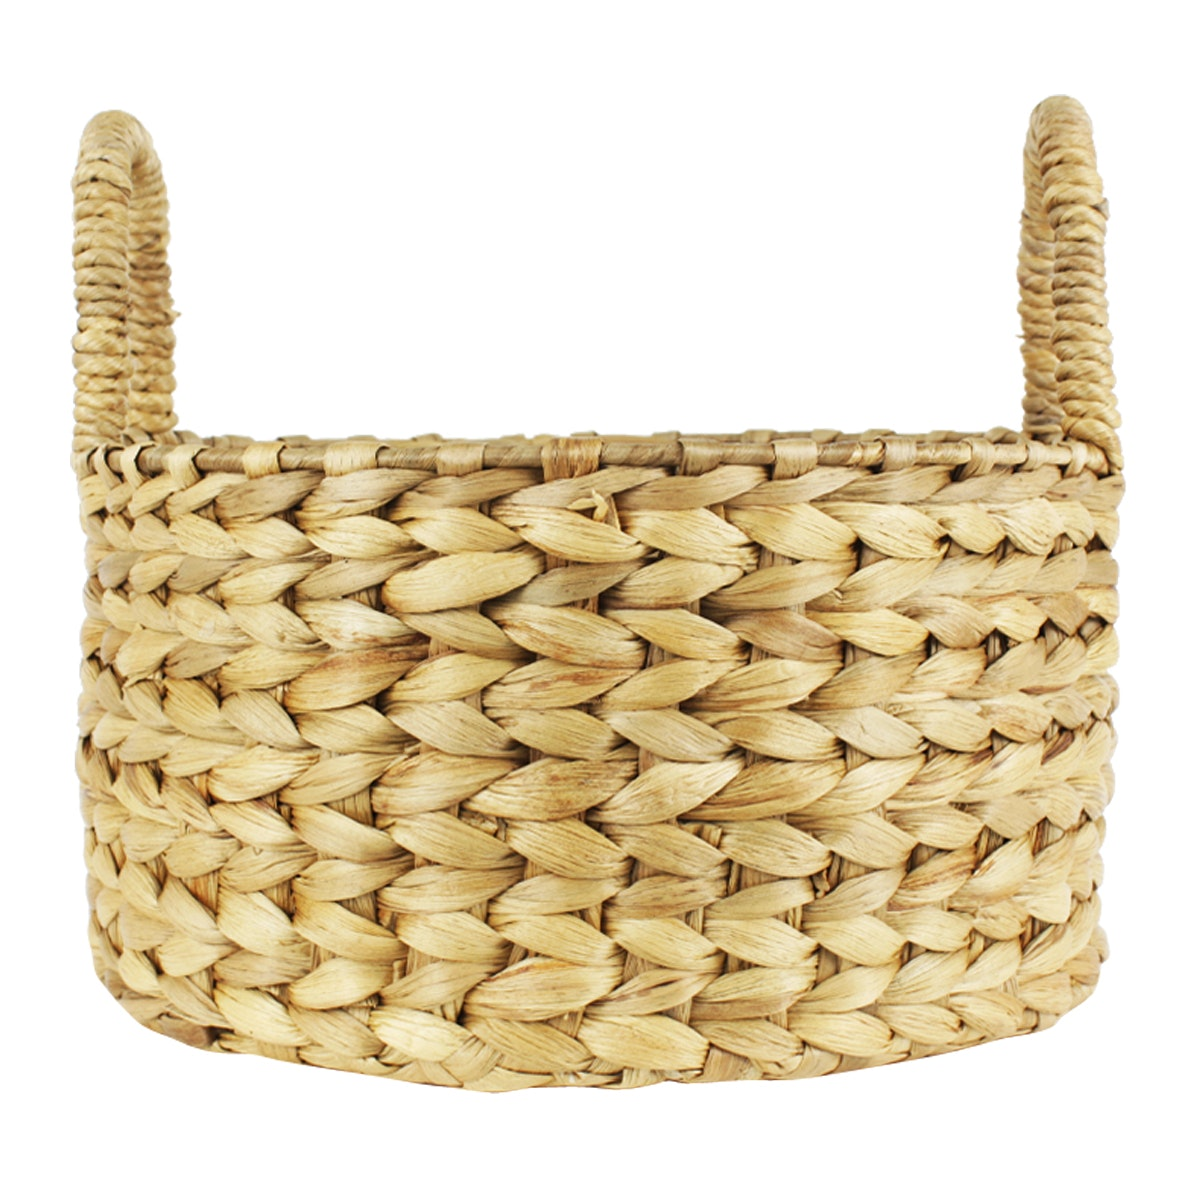 Nestudio Nolan Basket [Medium]